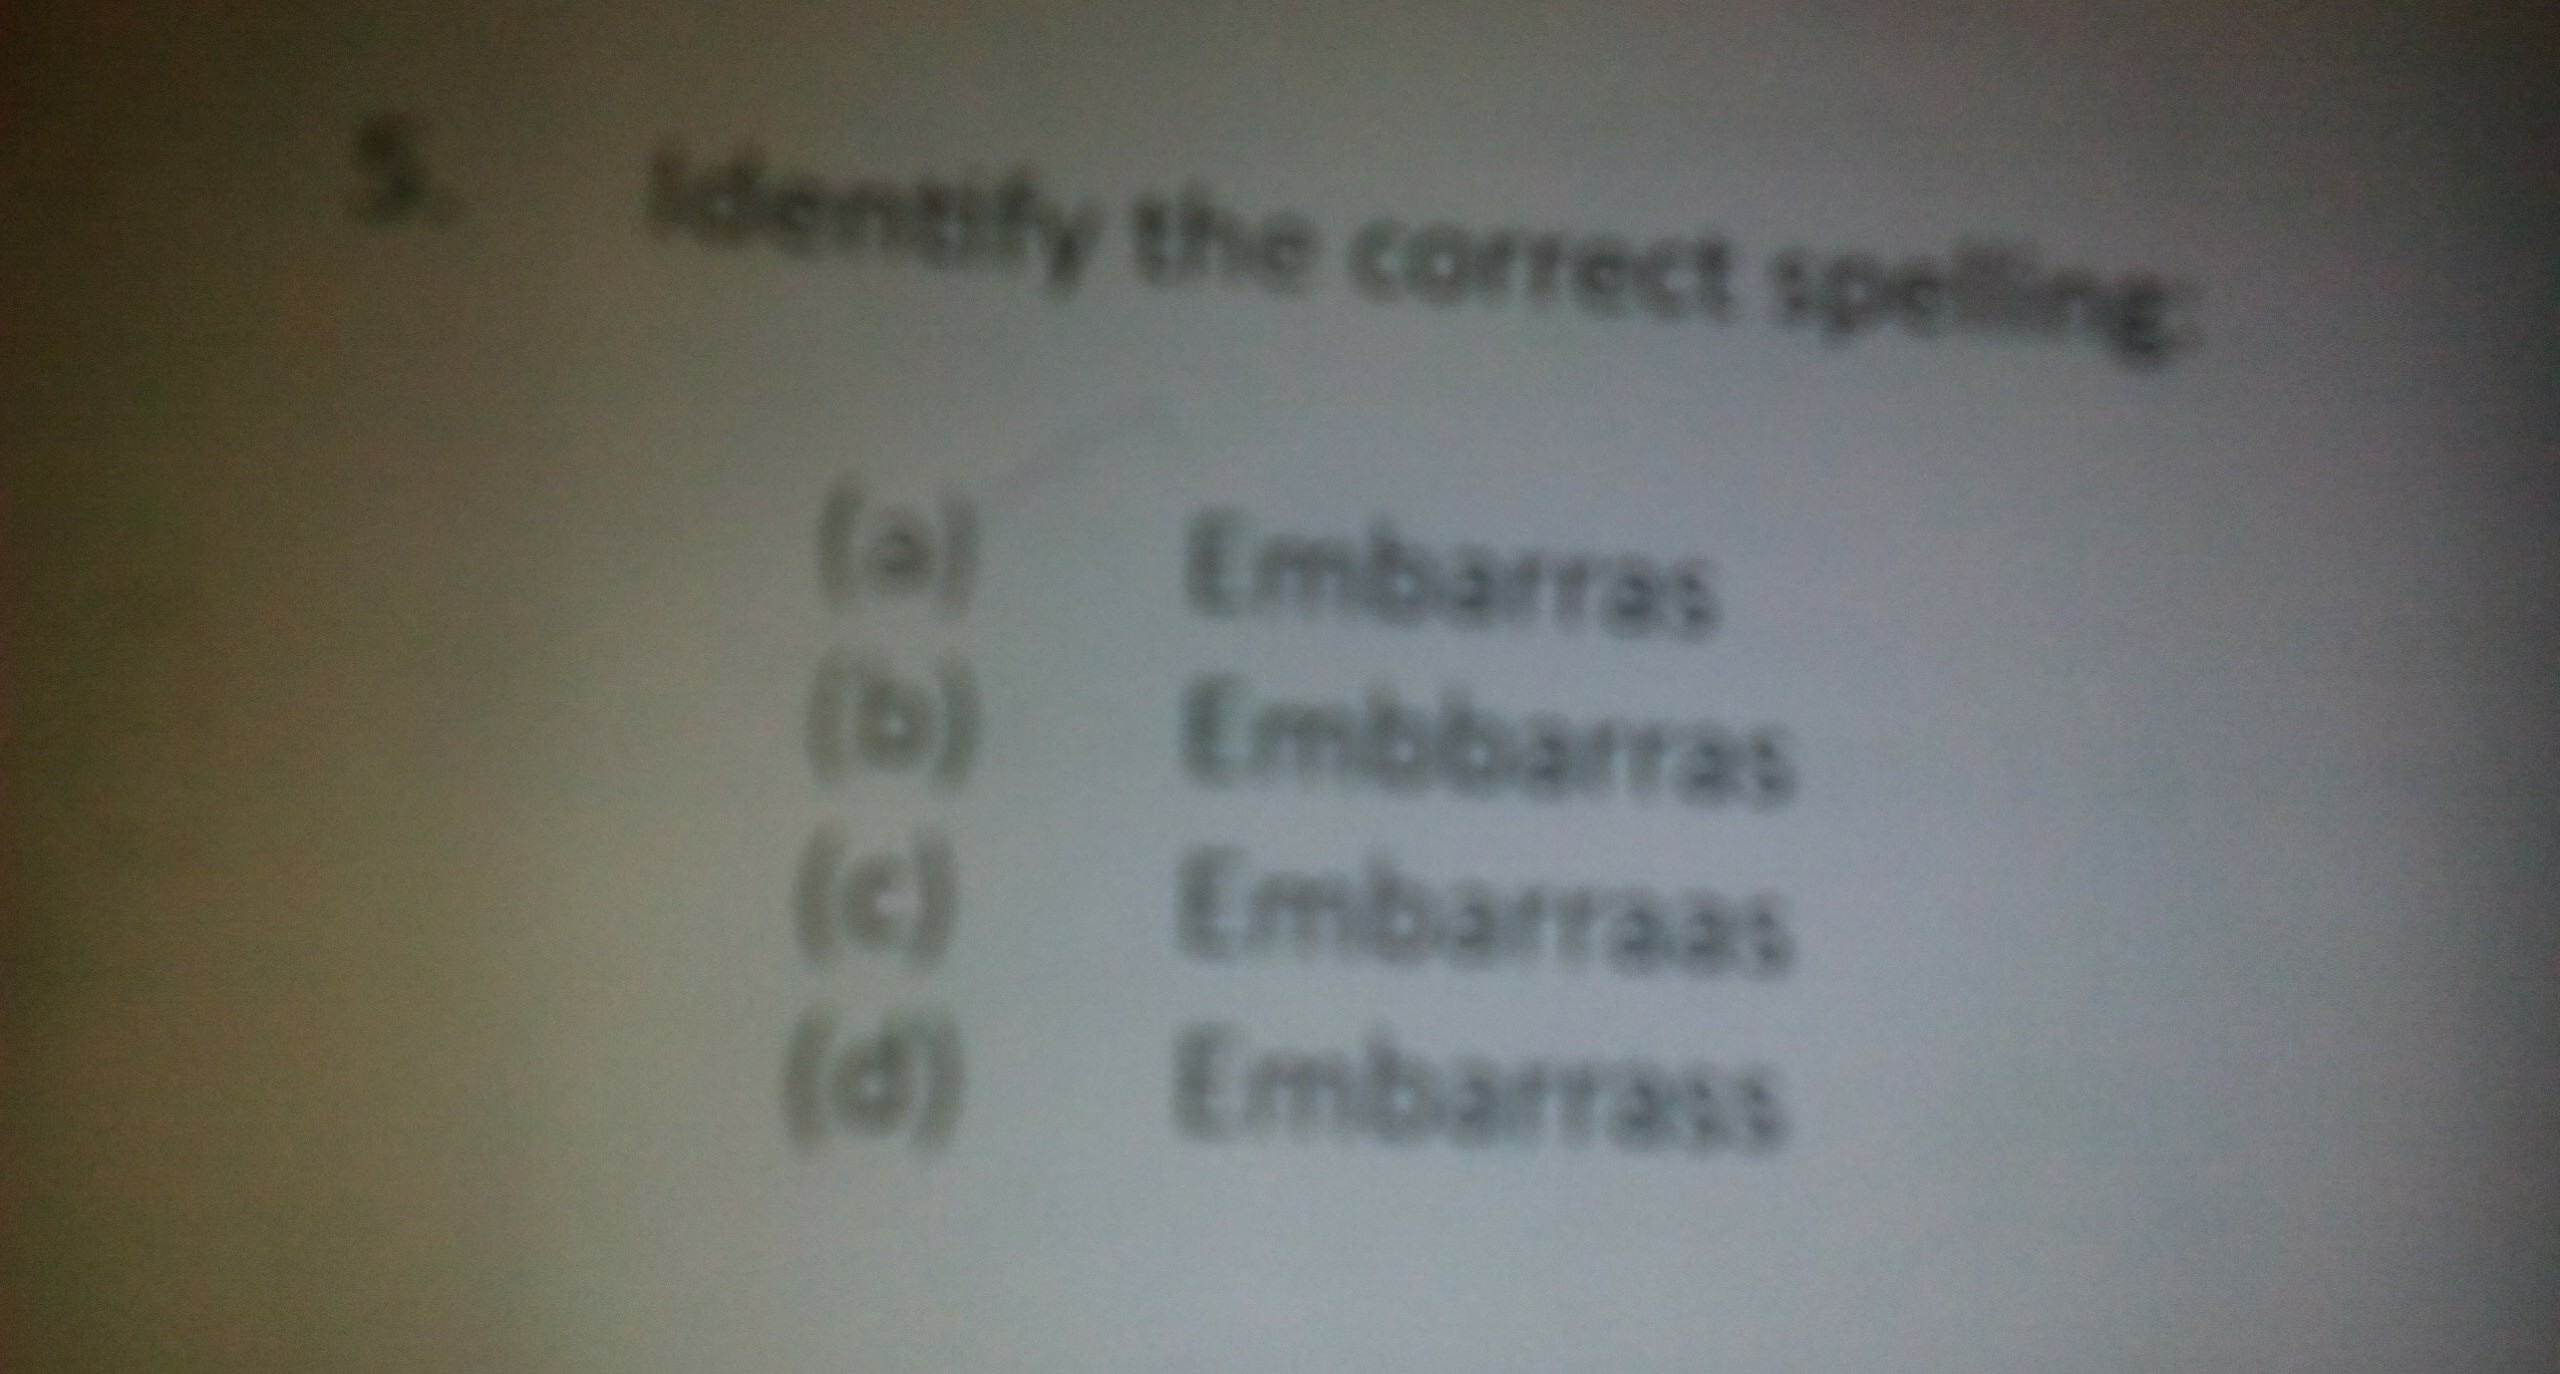 this is a English question pls answer it - Brainly in